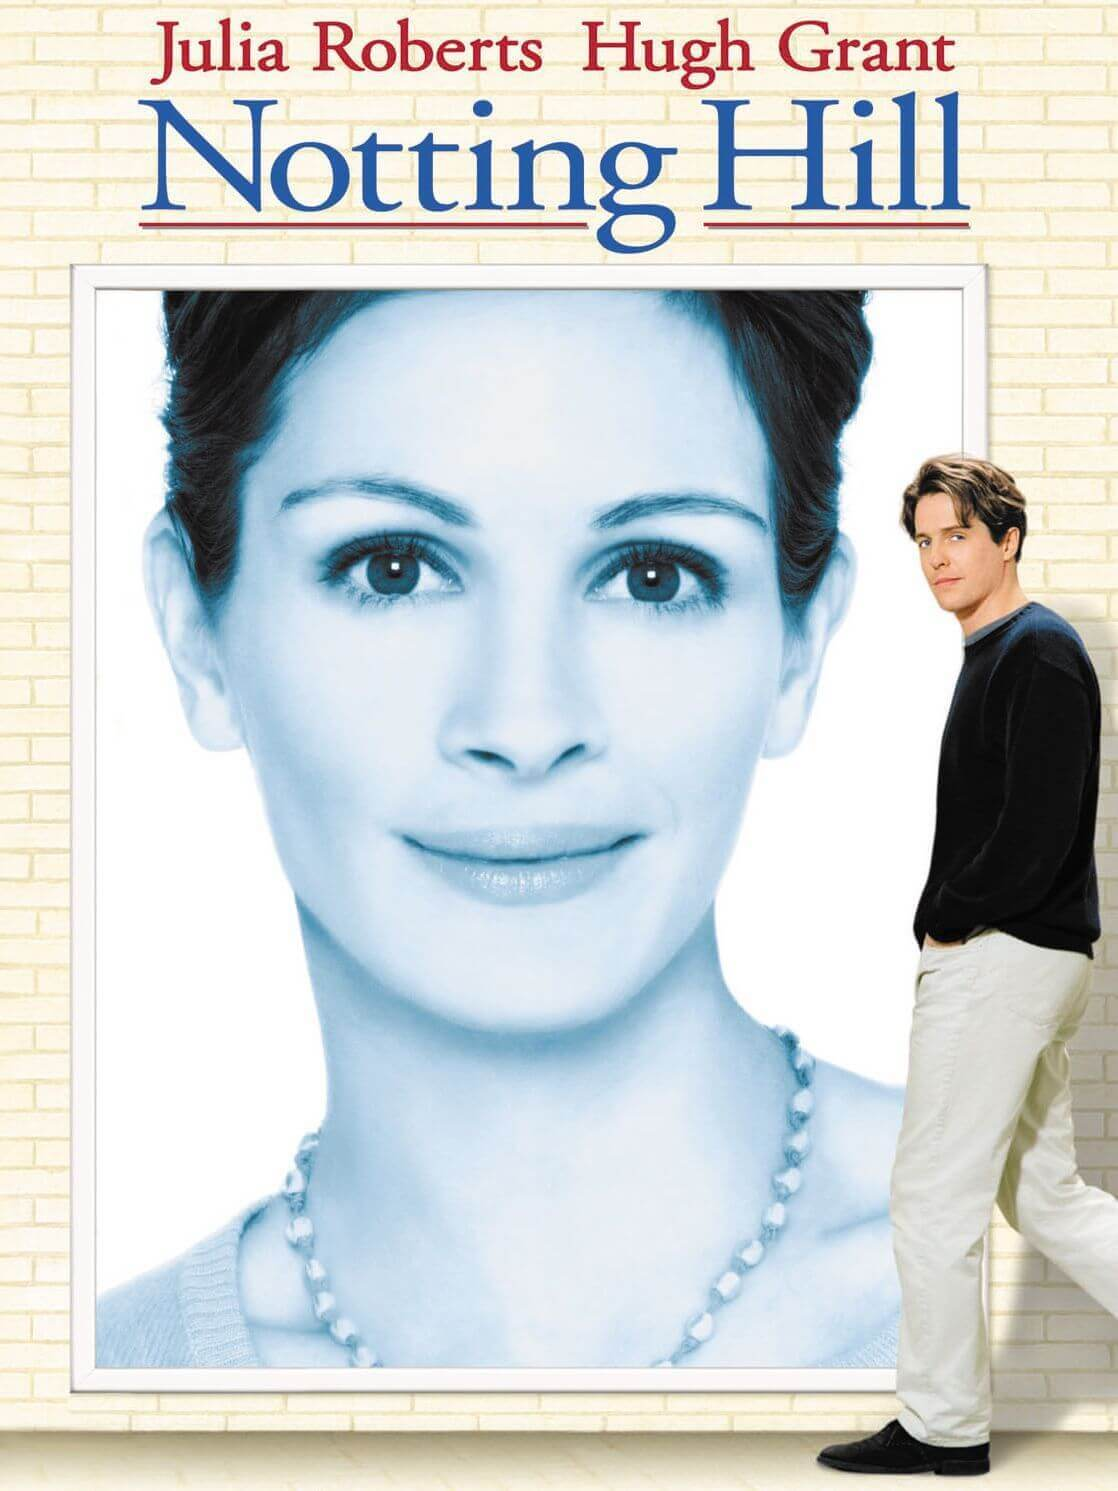 Notting Hill movie cover.